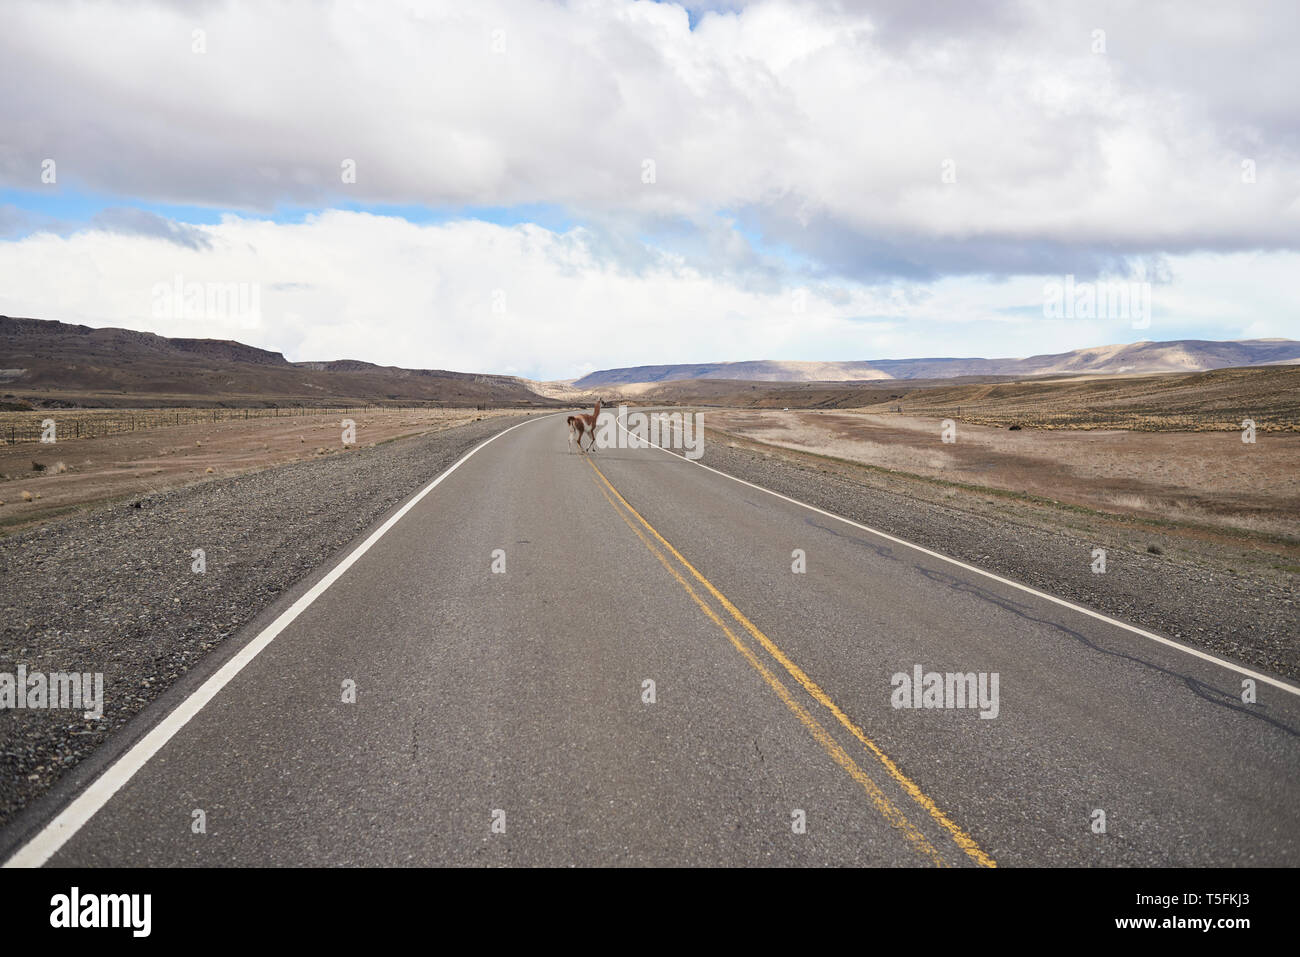 Argentina, Patagonia, National Route 40, Guanaco crossing empty road in the middle of desert - Stock Image